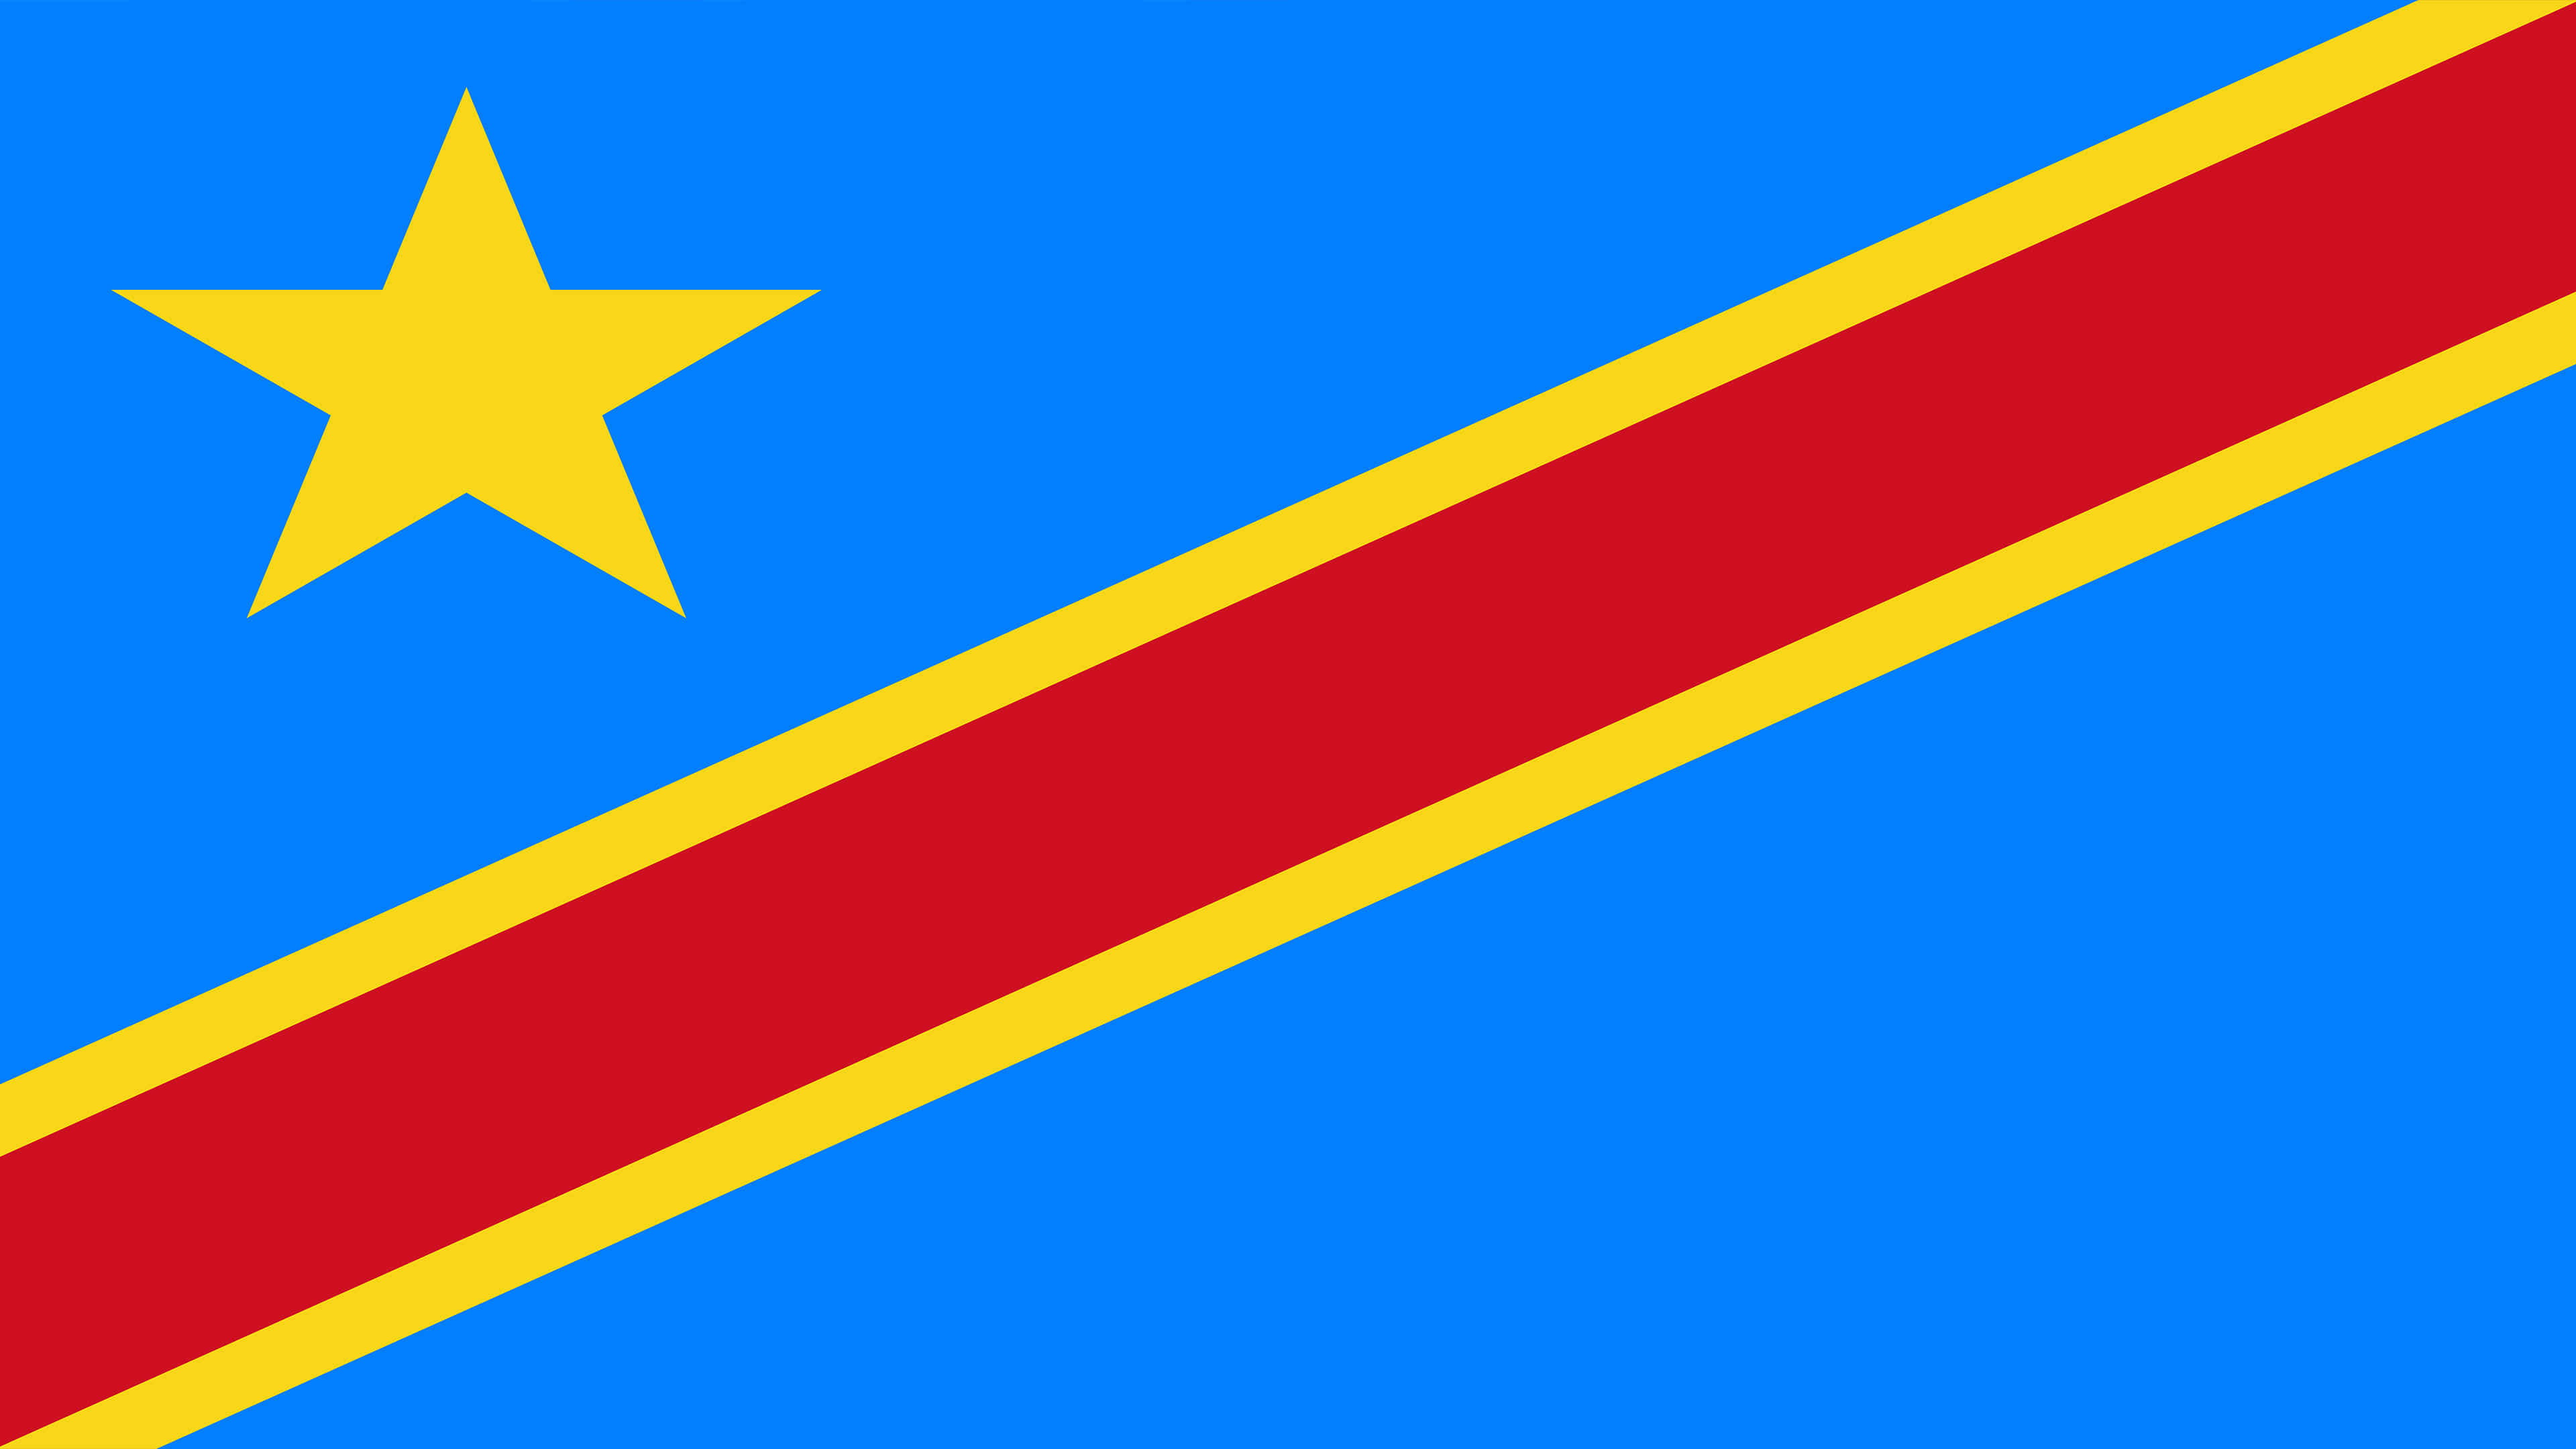 Democratic Republic Of The Congo Flag UHD 4K Wallpaper Pixelz 3840x2160